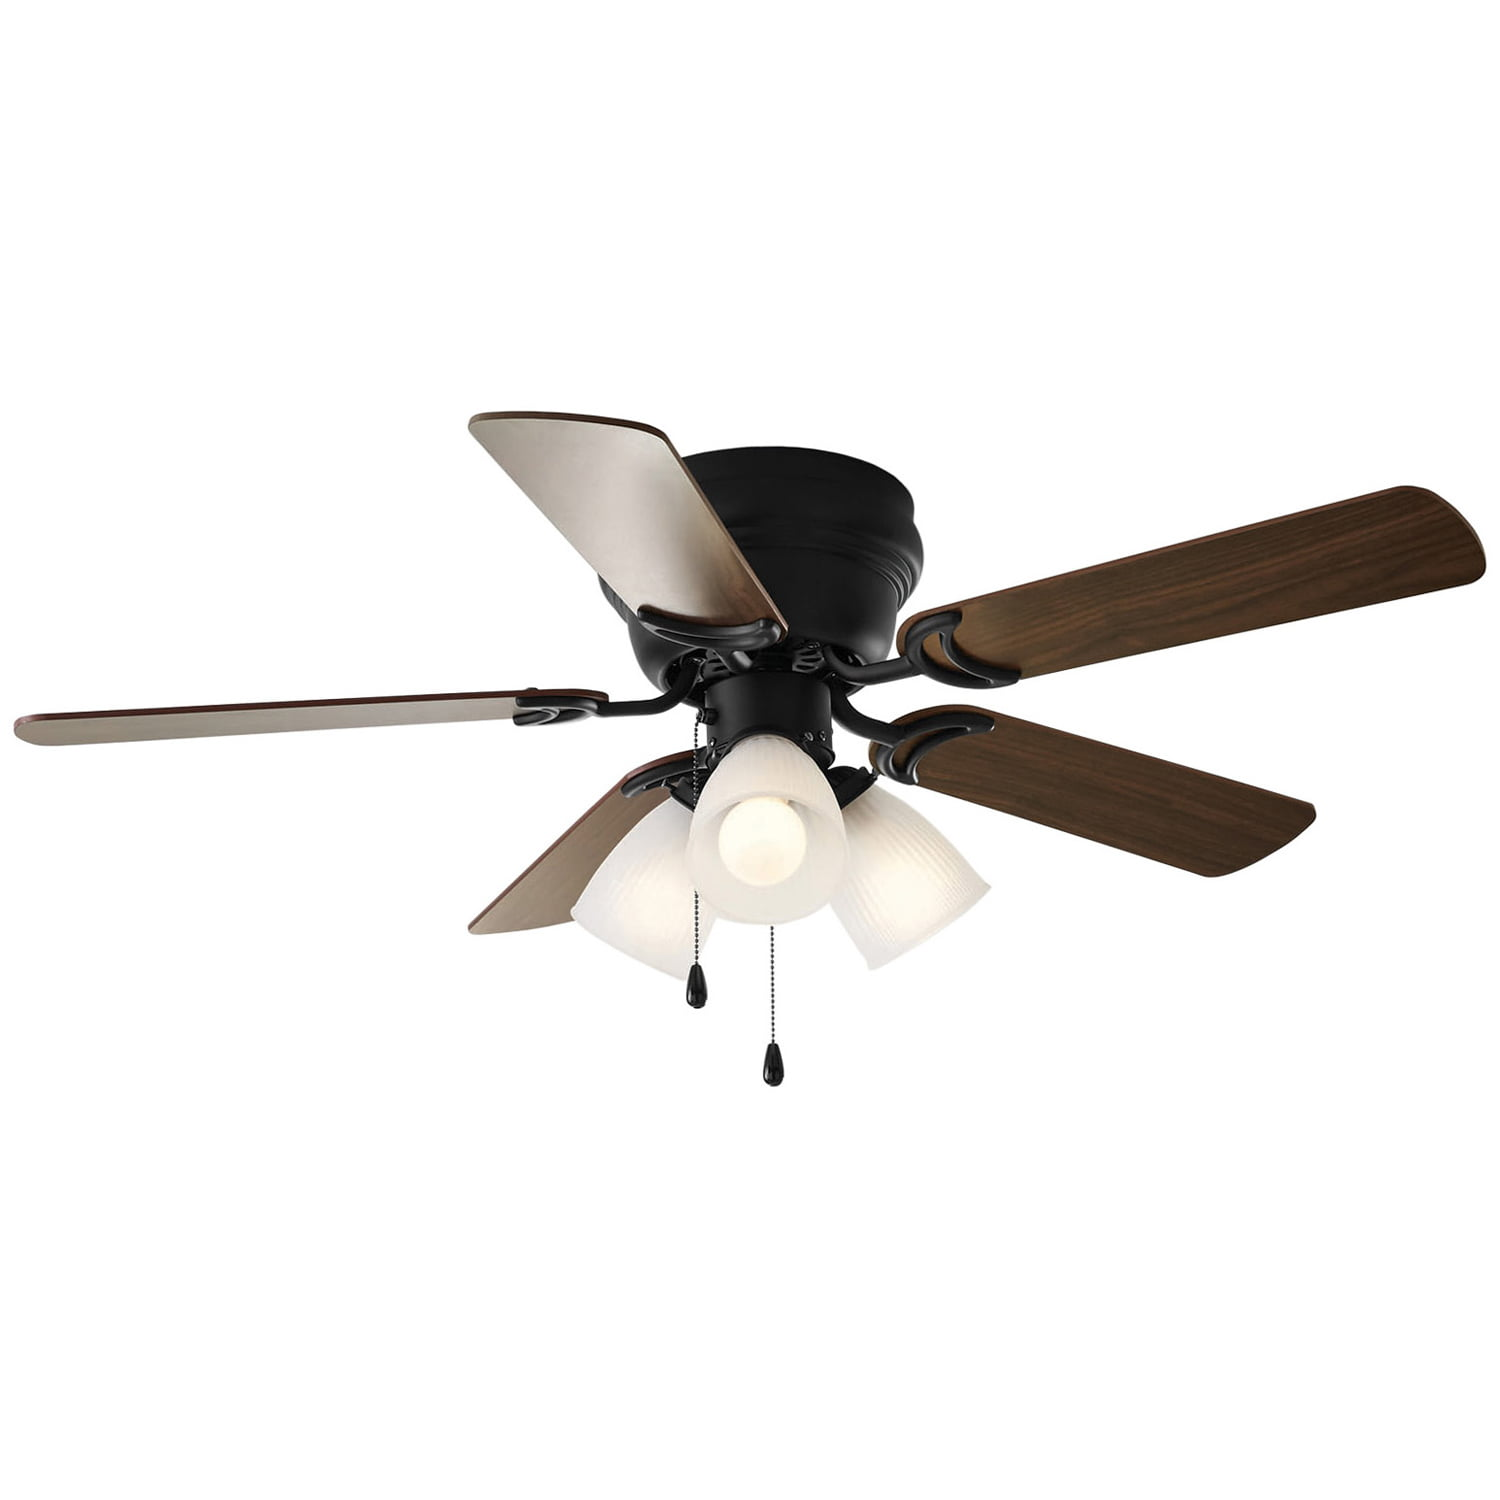 low andover for mills brook led wayfair ceilings ceiling pdx fan boulder lighting reviews blade fans